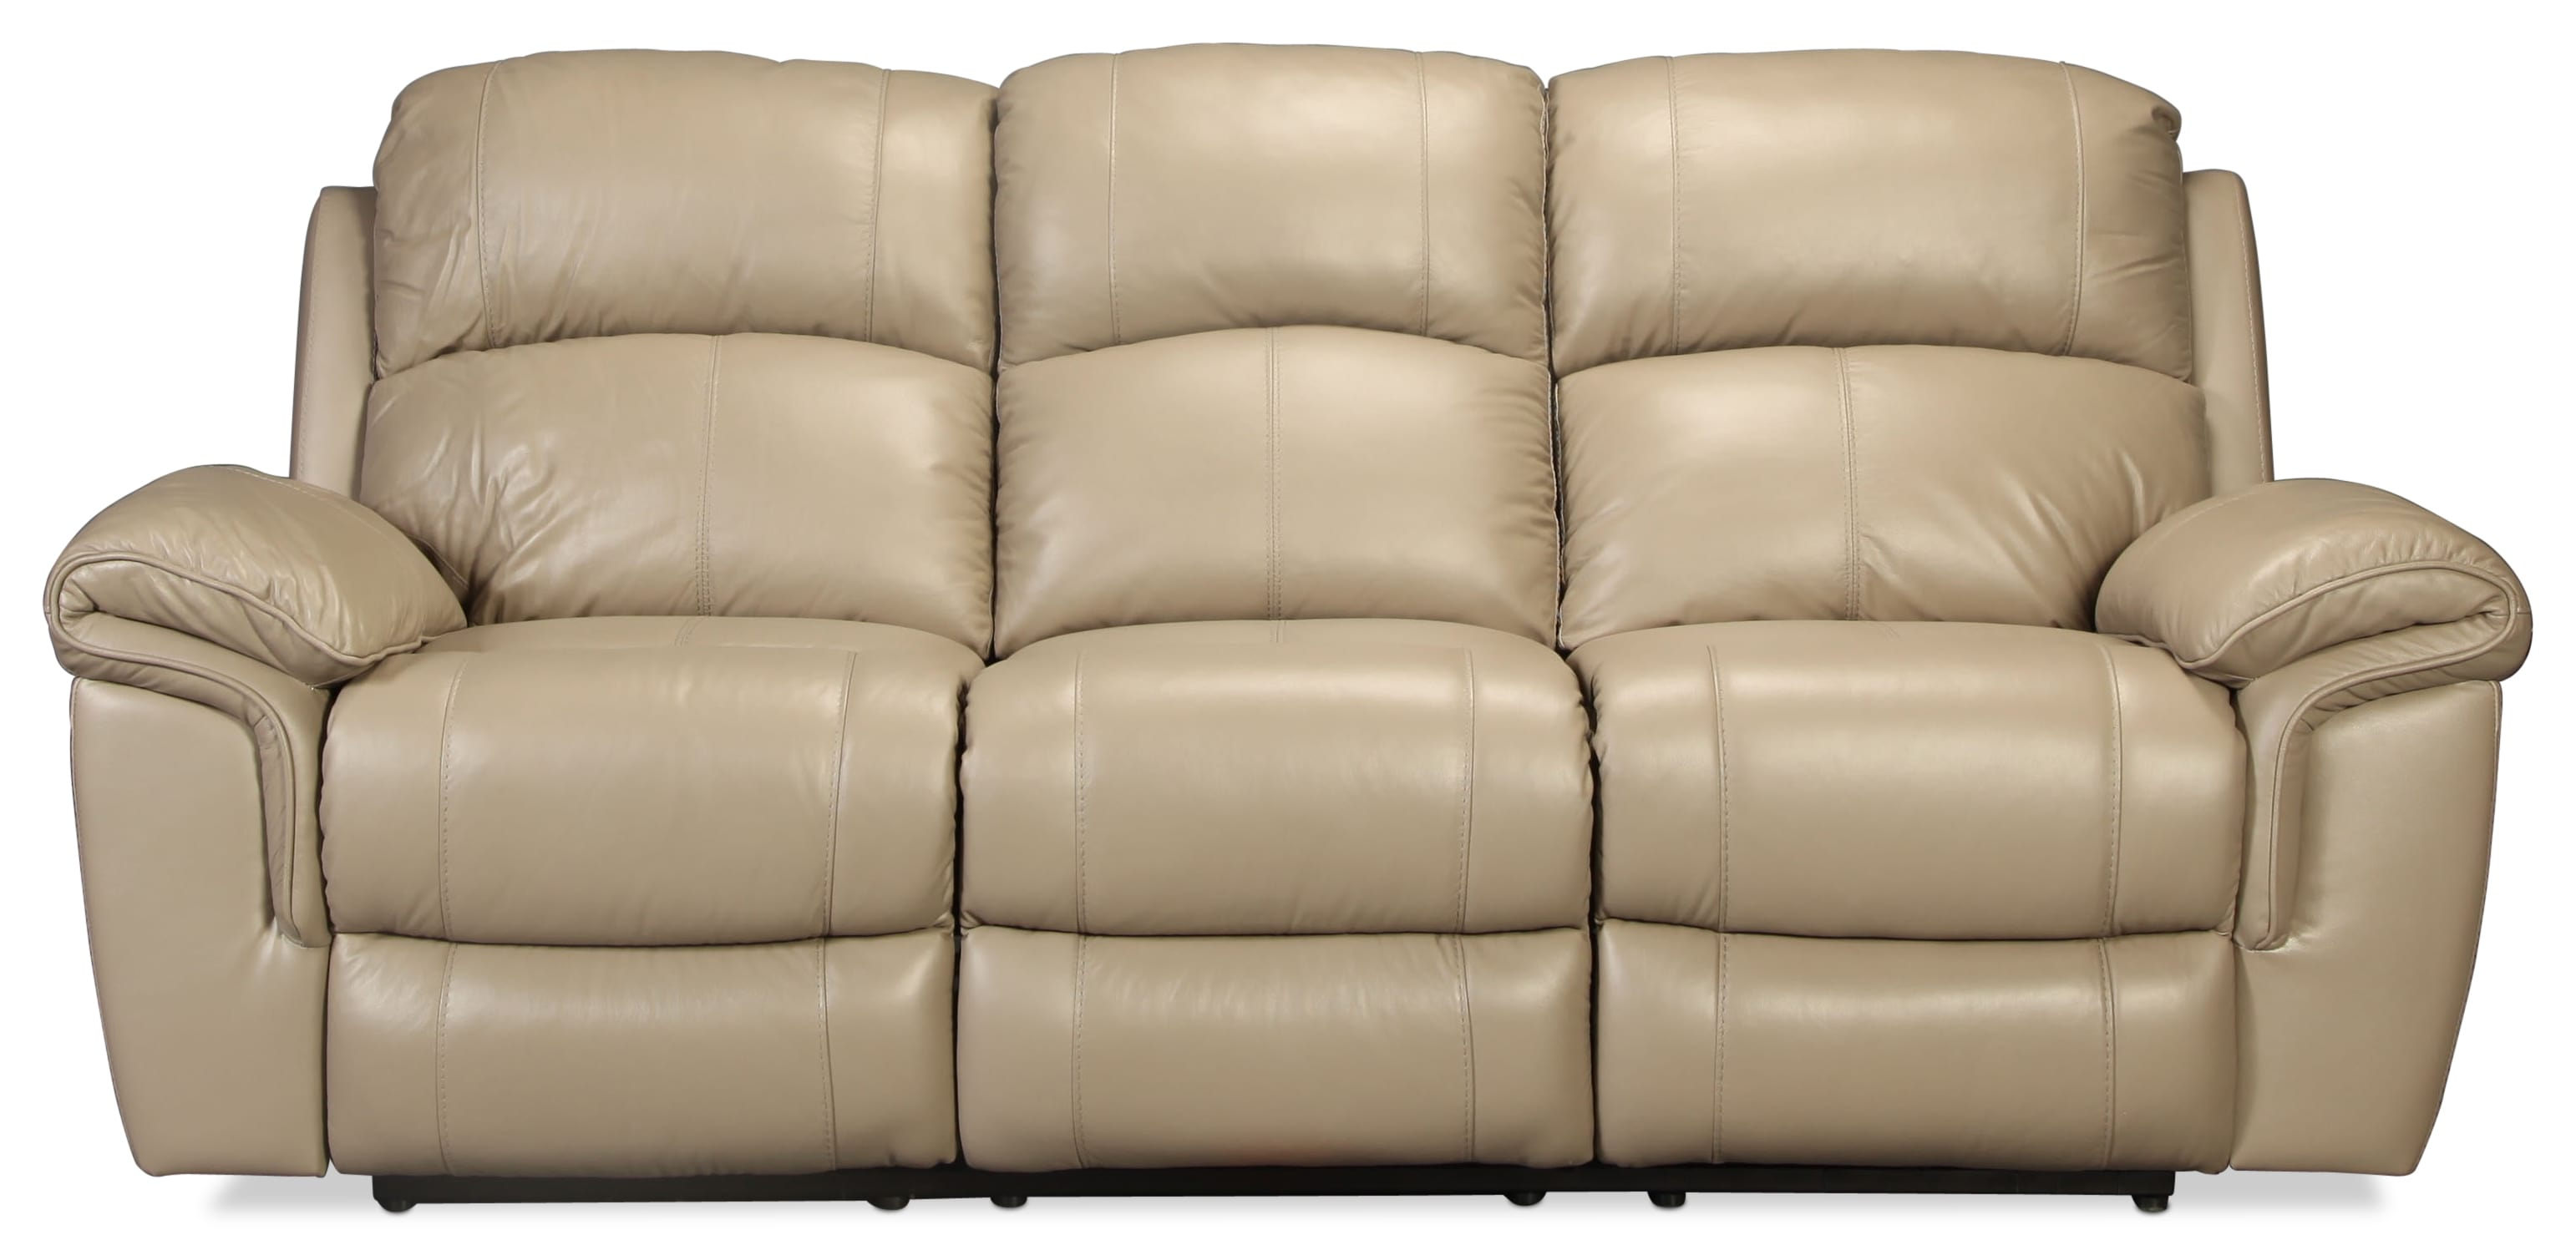 Braxton Power Reclining Sofa